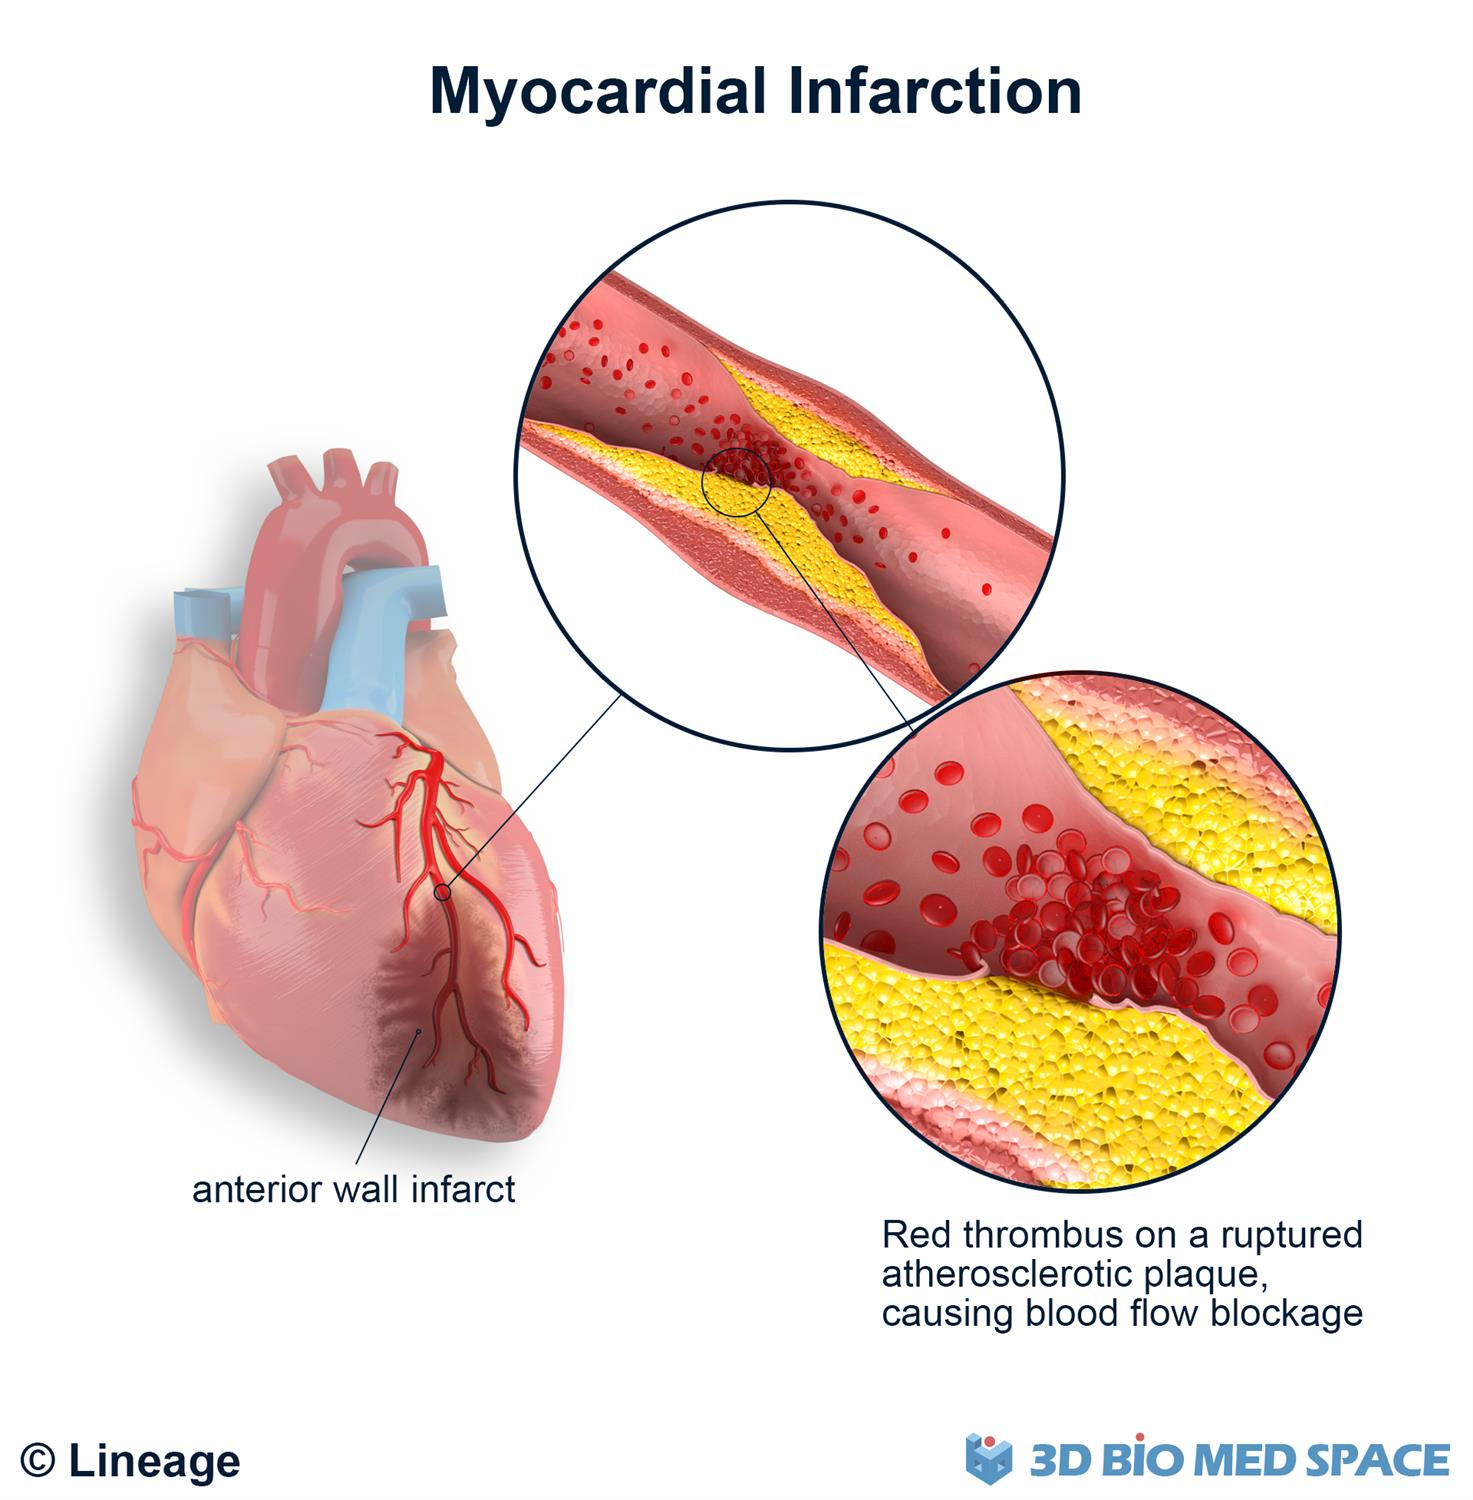 Myocardial infarction anatomy